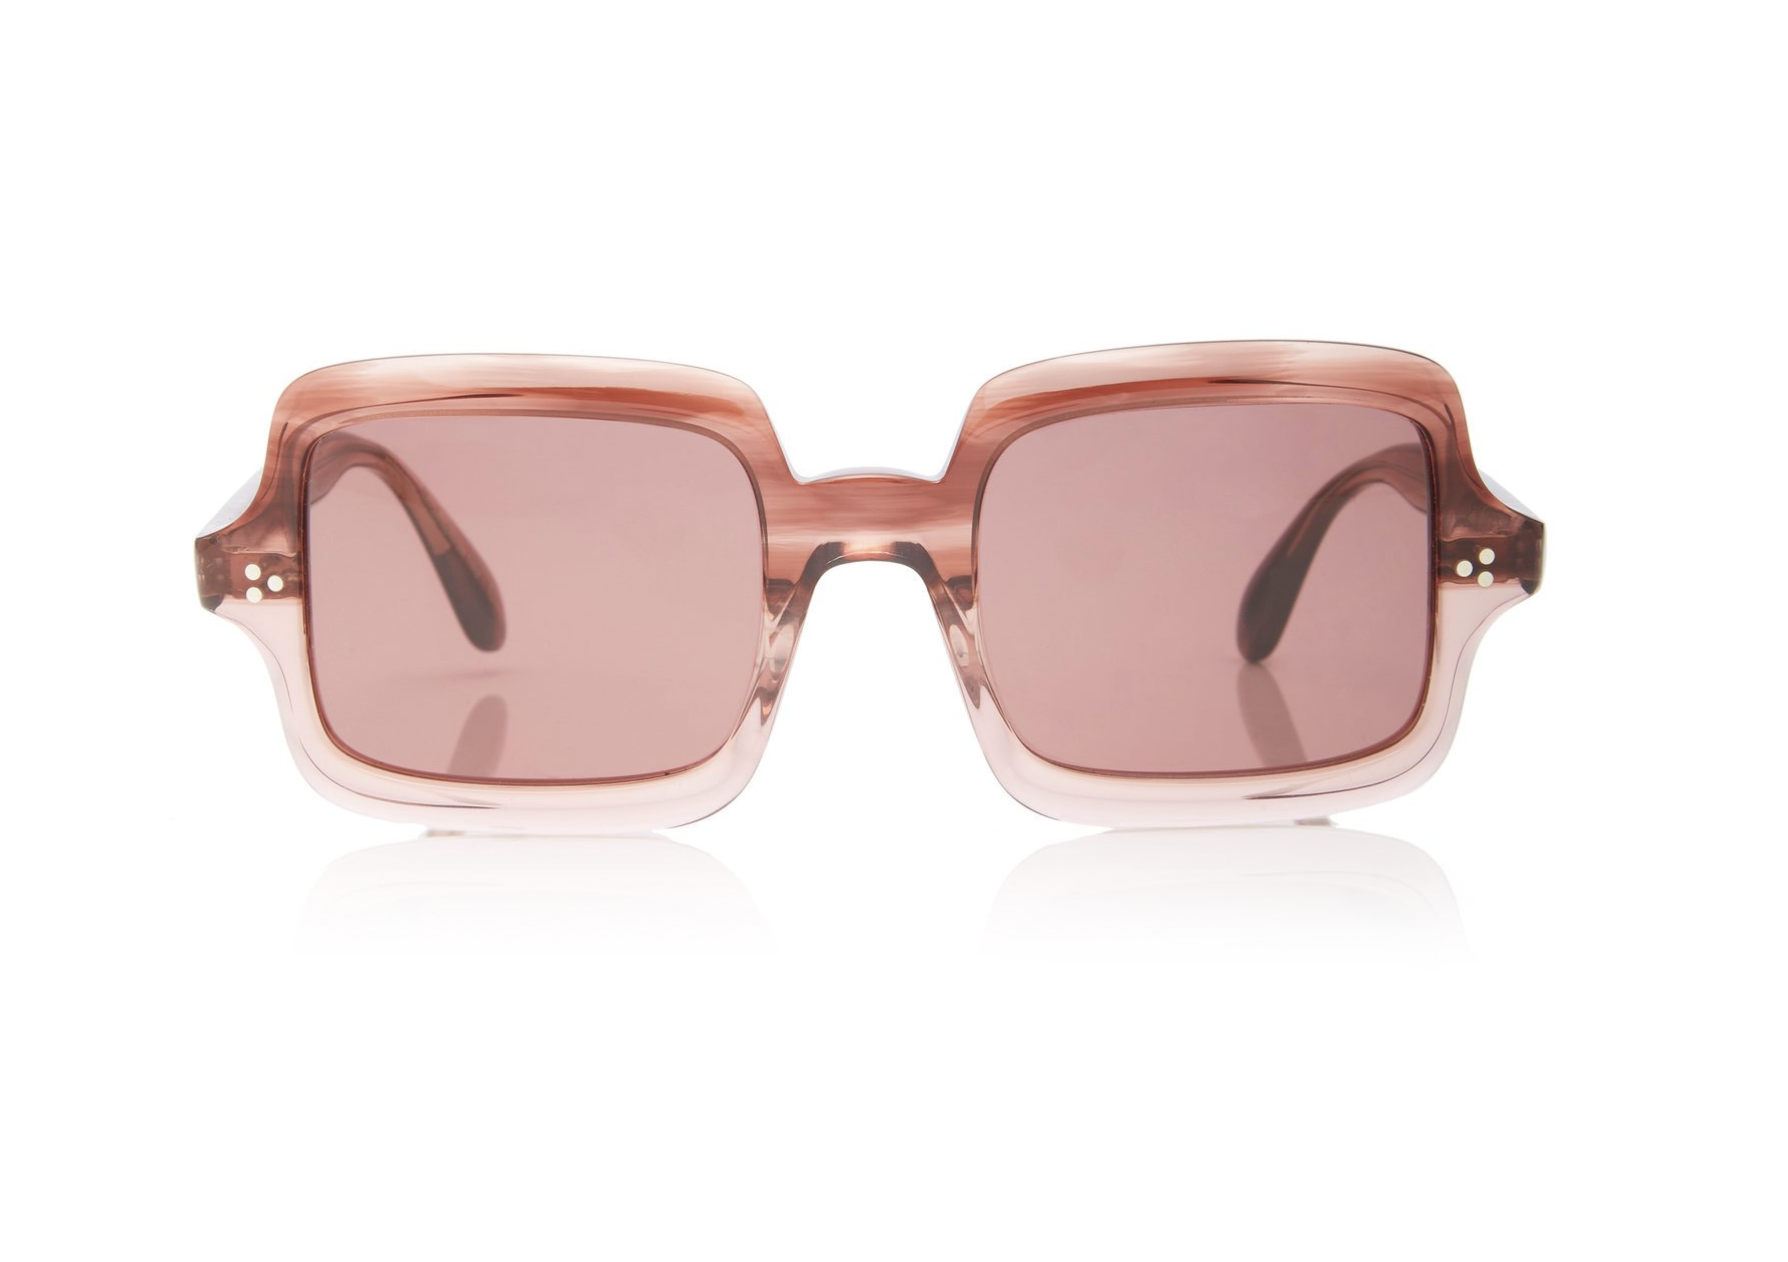 oliver-peoples-sunglasses-ss-21-edit